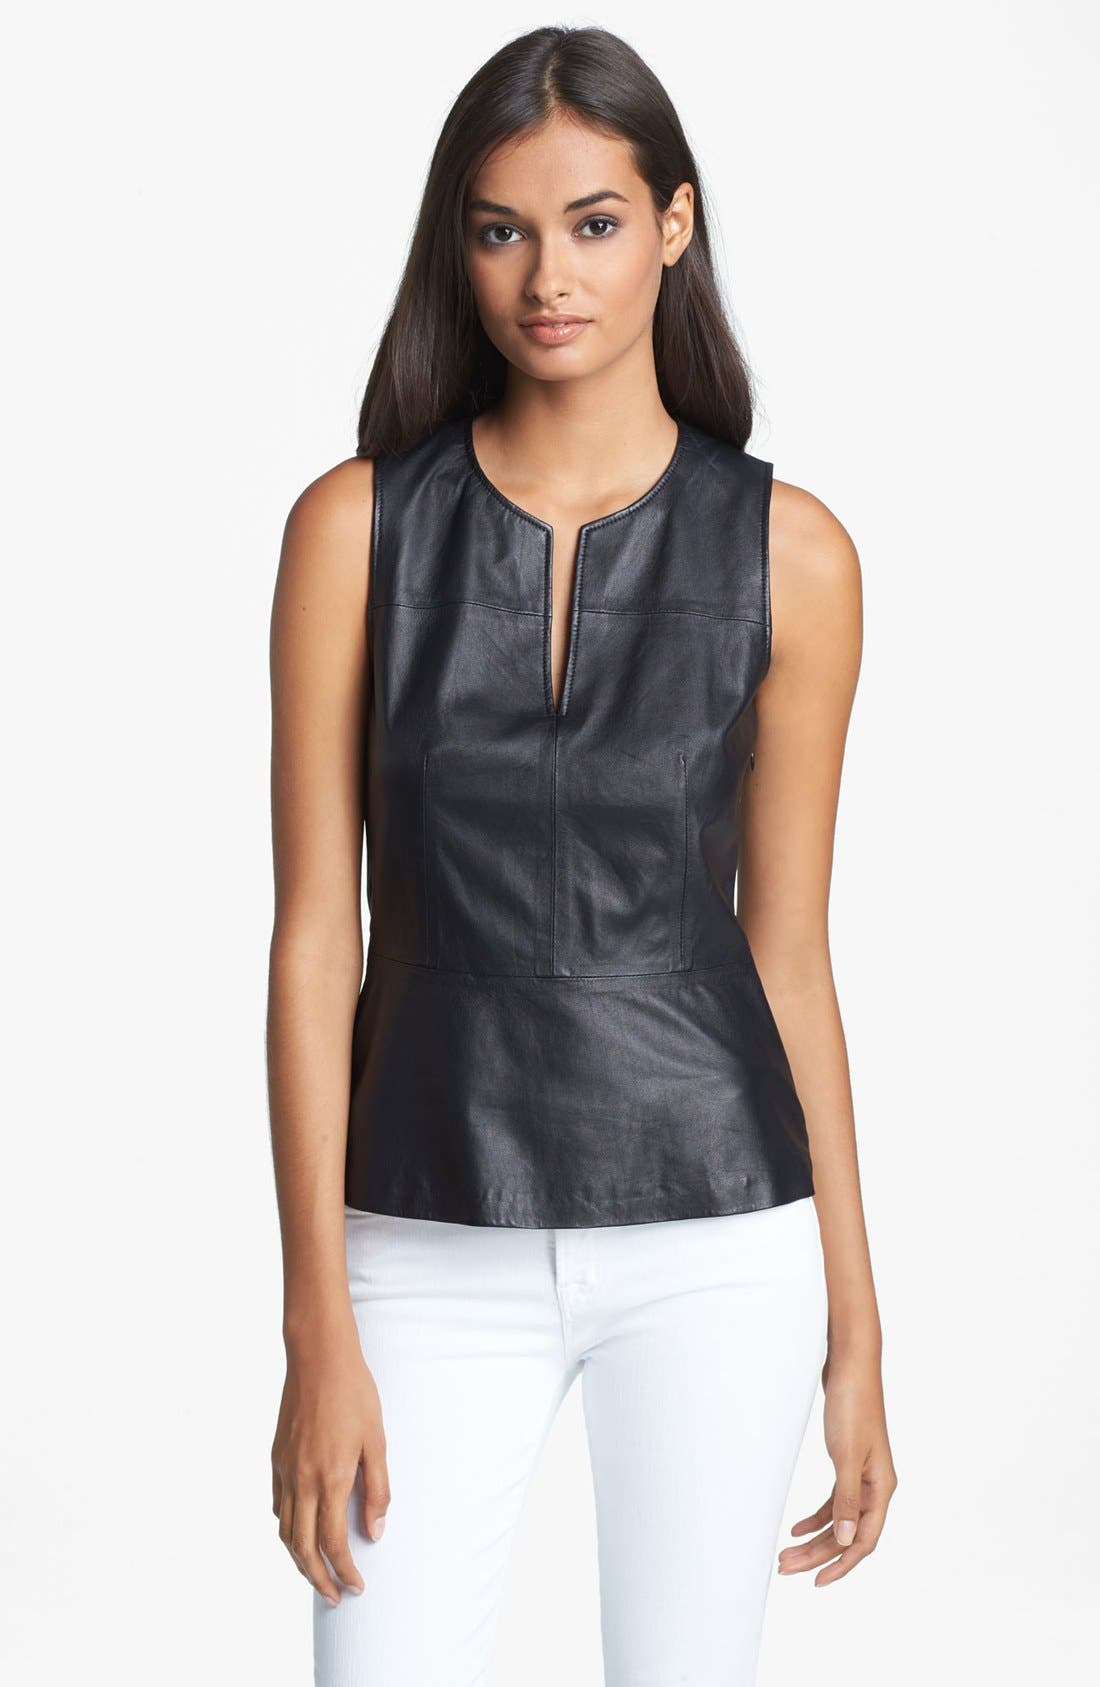 Main Image - Theory 'Etia L.' Leather Top